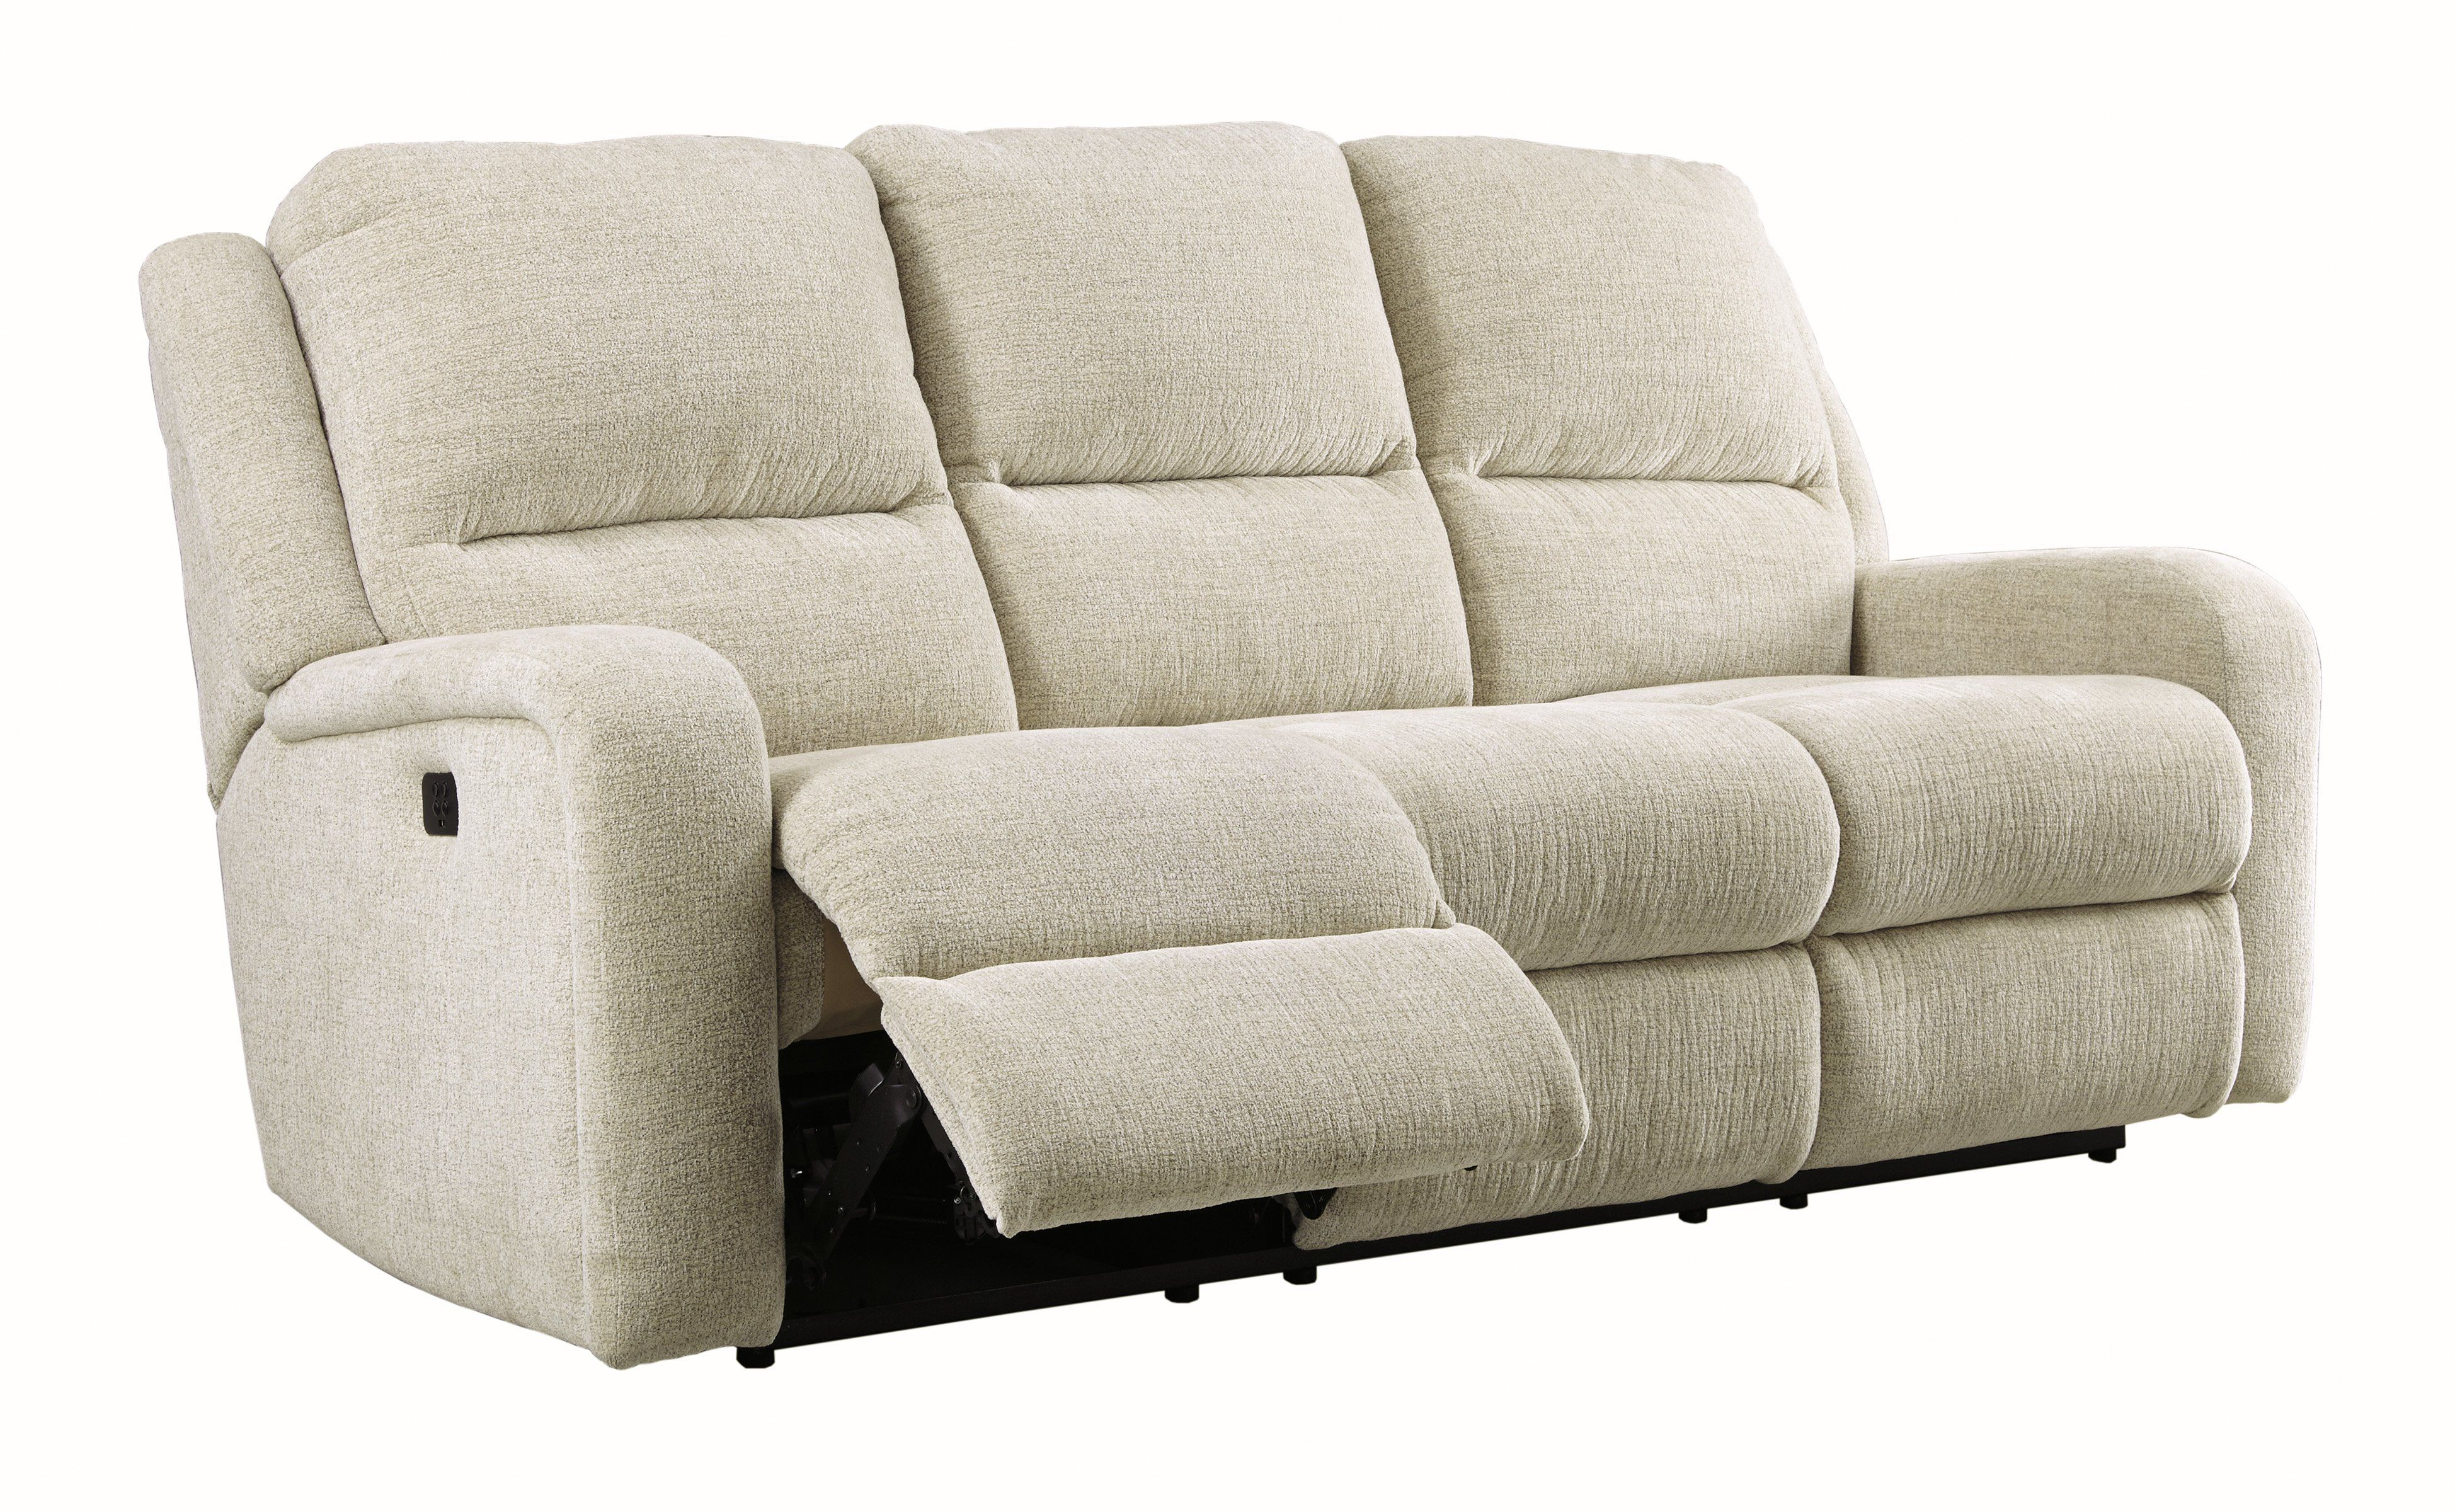 Phenomenal Krismen Power Reclining Sofa W Adjustable Headrest Evergreenethics Interior Chair Design Evergreenethicsorg